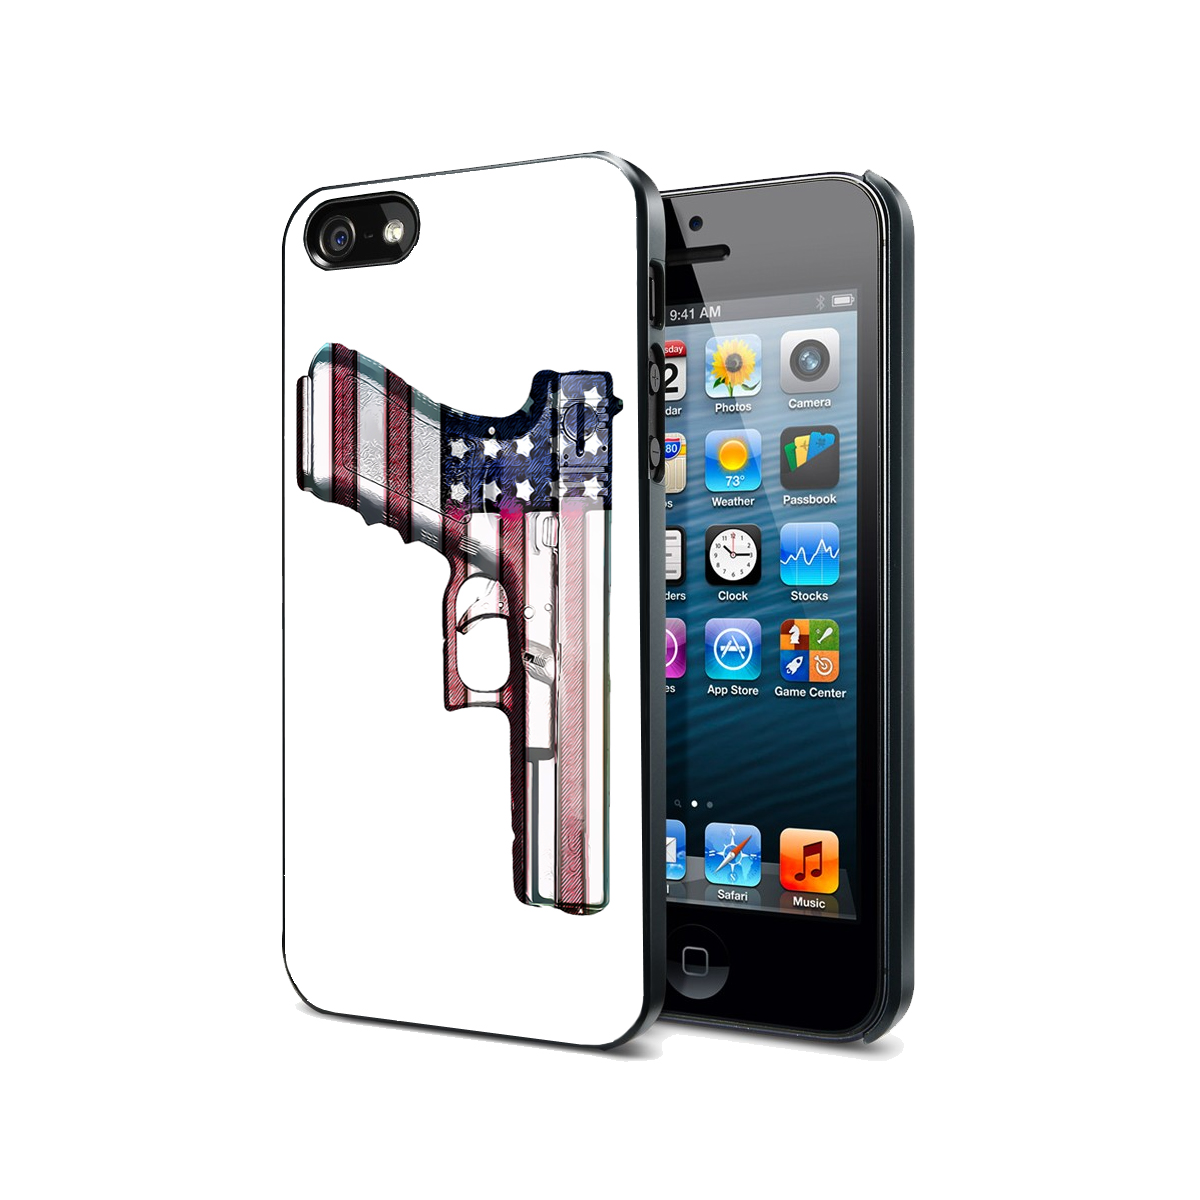 KuzmarK Black Cover Case fits iPhone SE & iPhone 5 - American Flag Gun Rights